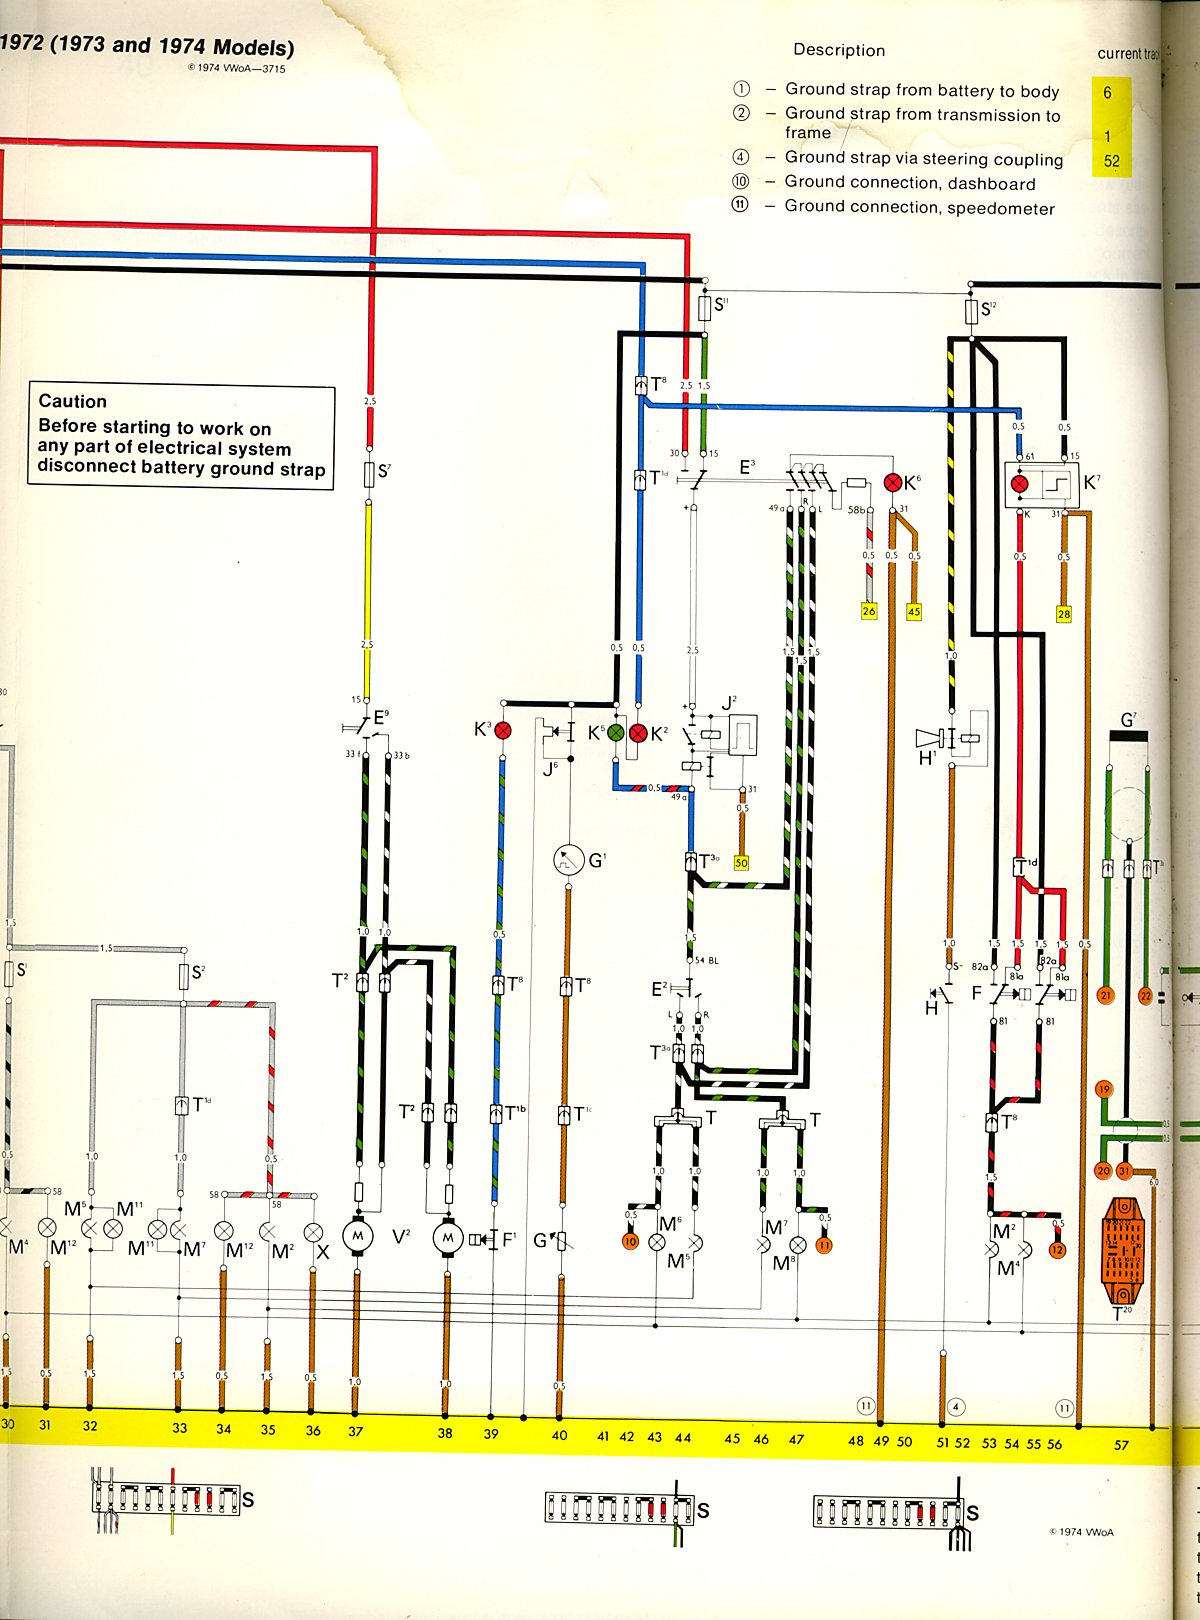 1973-74 bus wiring diagram | thegoldenbug.com 1967 fuse box wiring diagram mustang diagrams 74 beetle fuse box wiring diagram